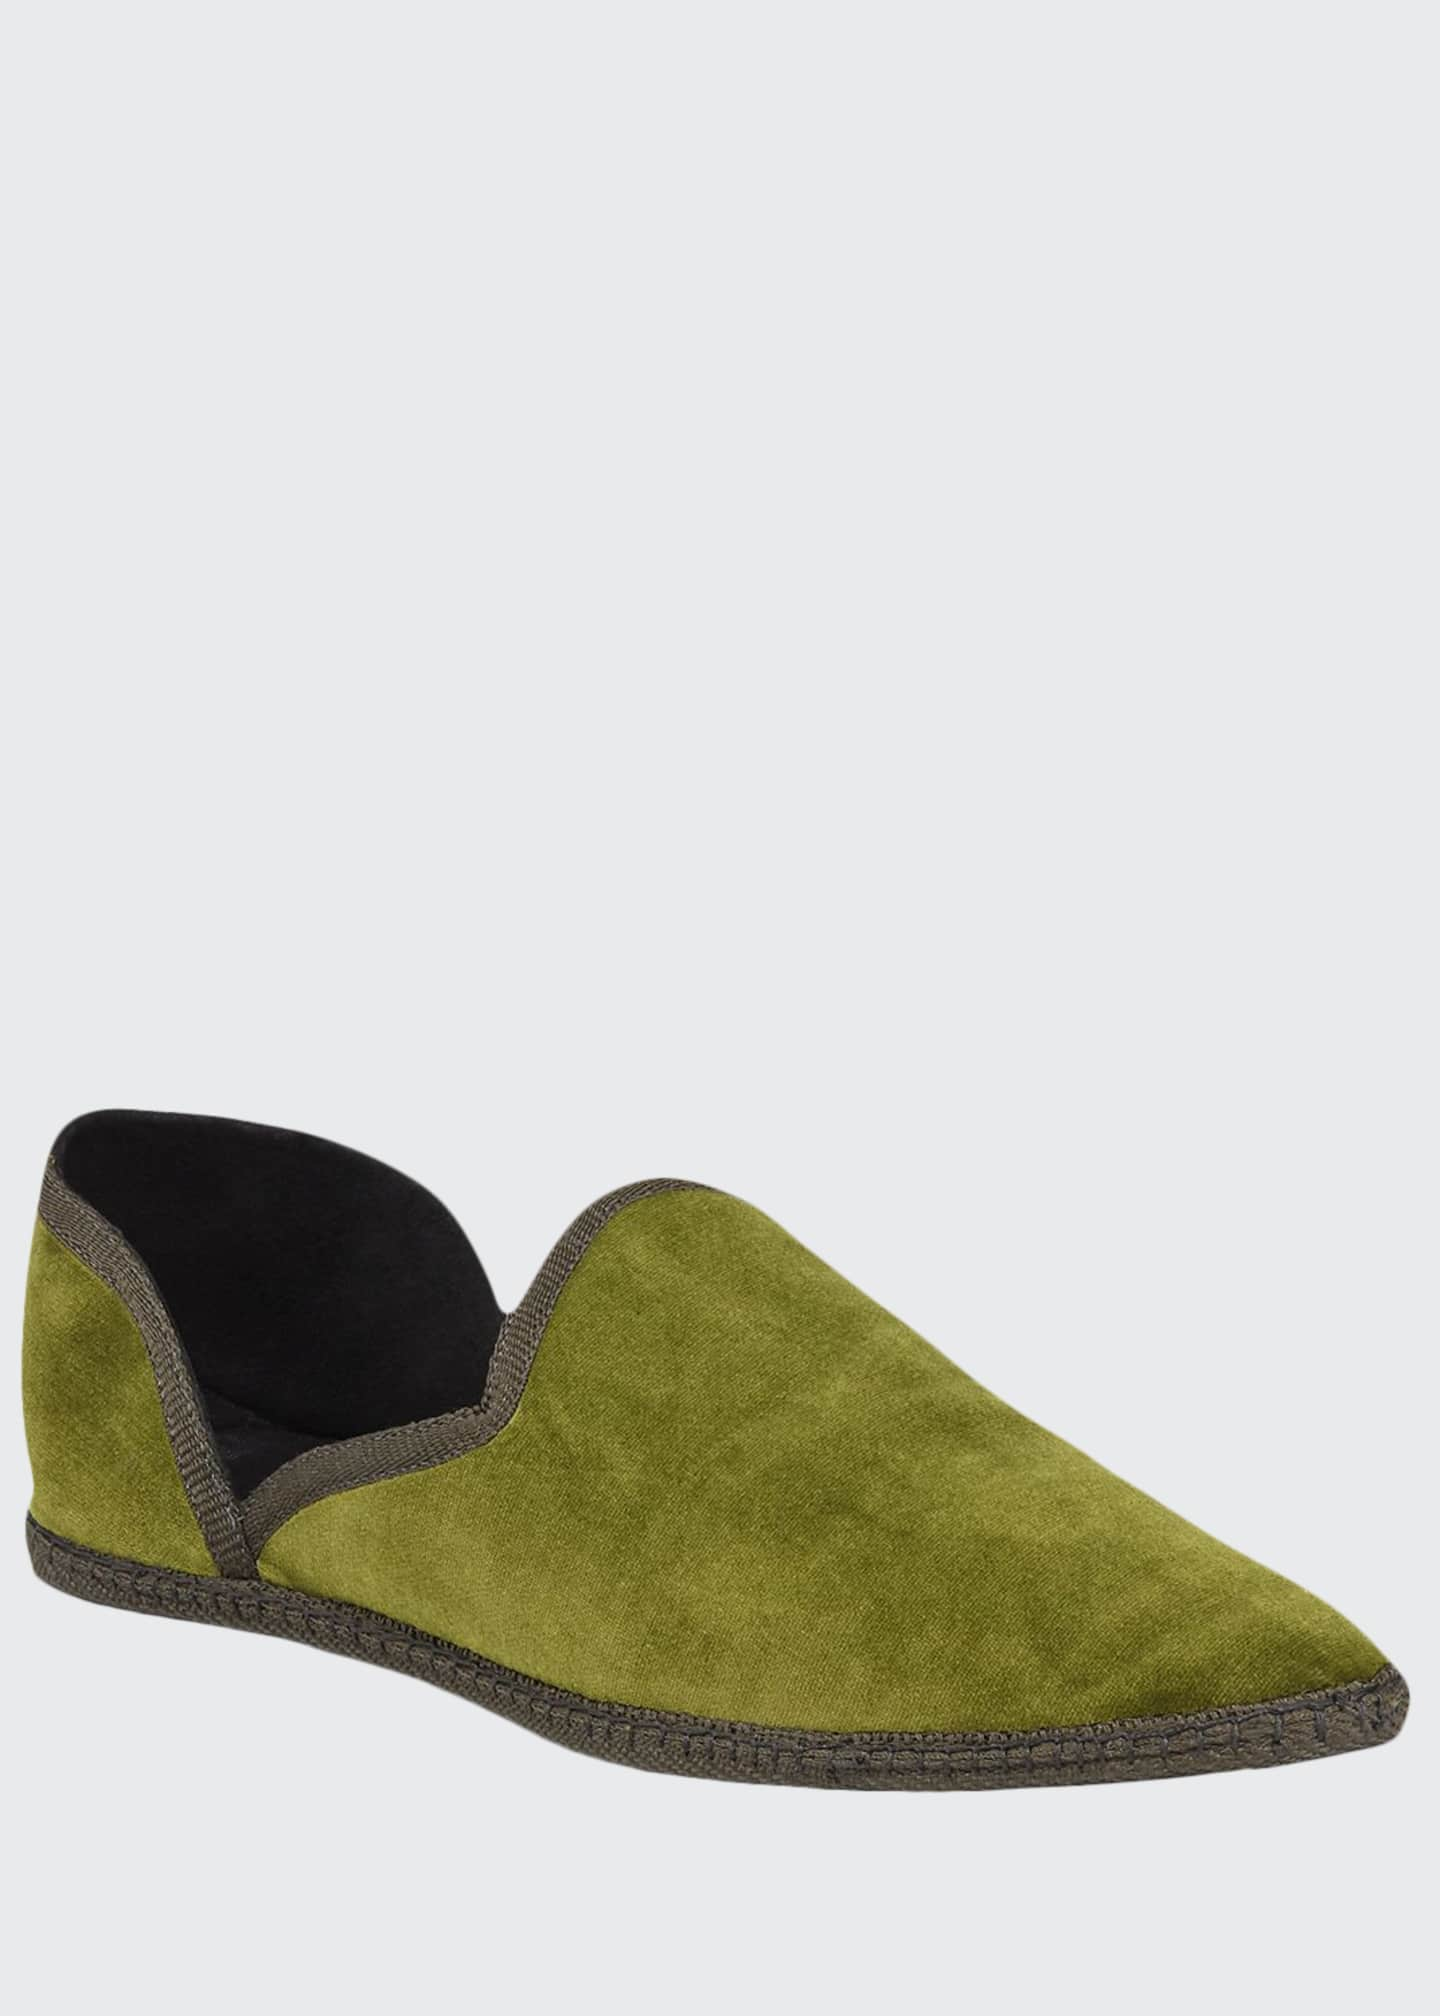 Image 1 of 3: Friulane Soft Velvet Flat Slippers